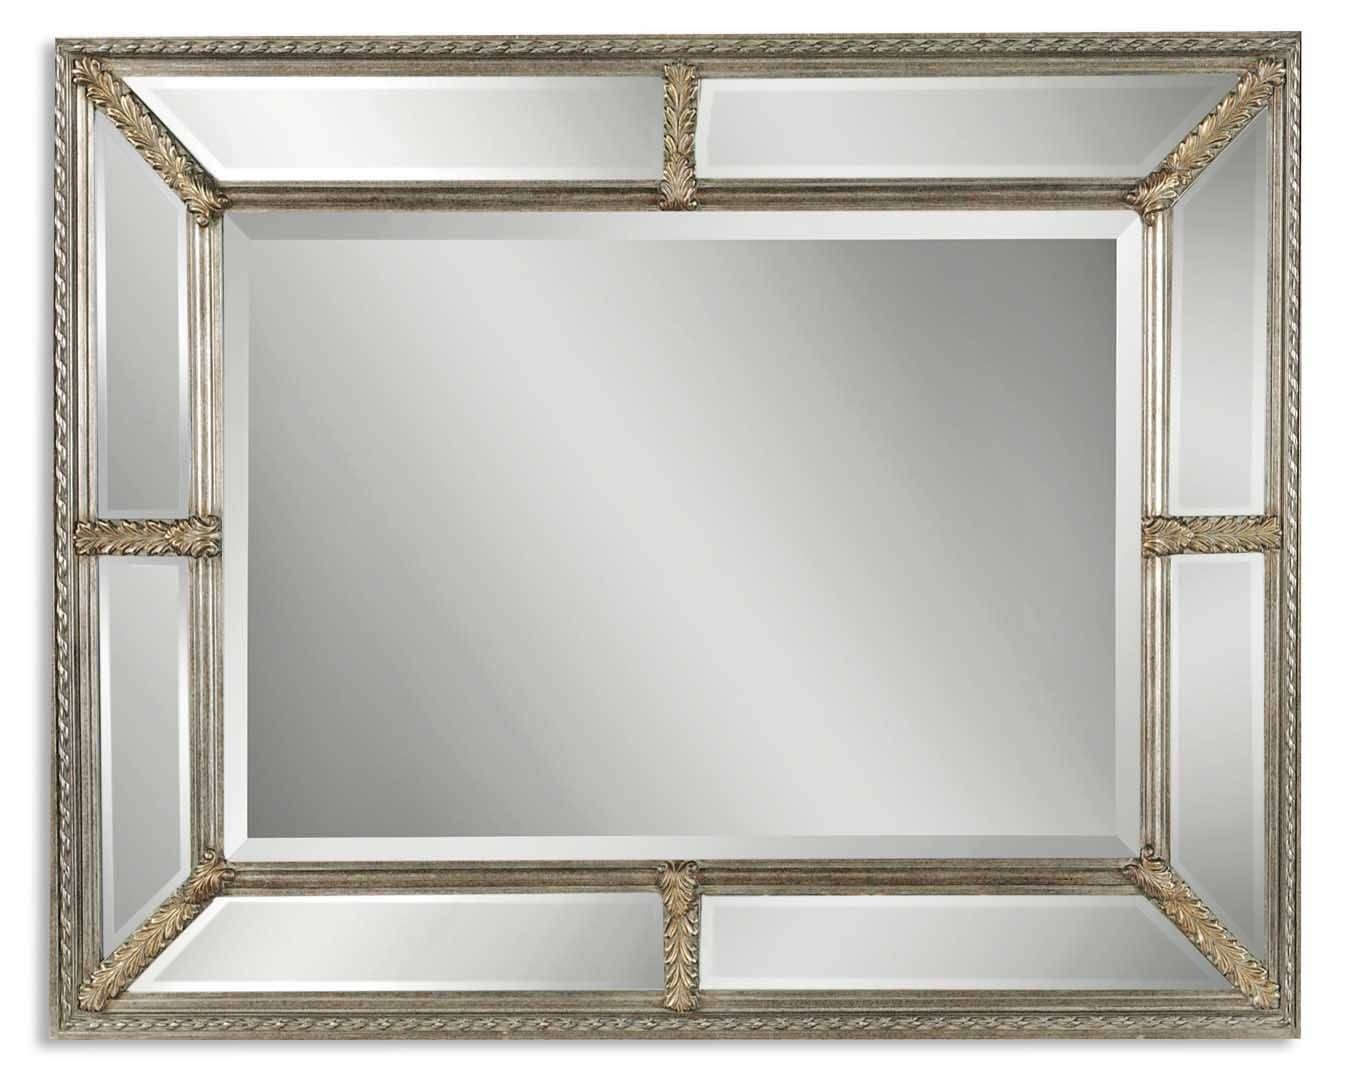 Uttermost Lucinda Antique Silver Mirror 14048 B For Champagne Silver Mirrors (View 6 of 15)